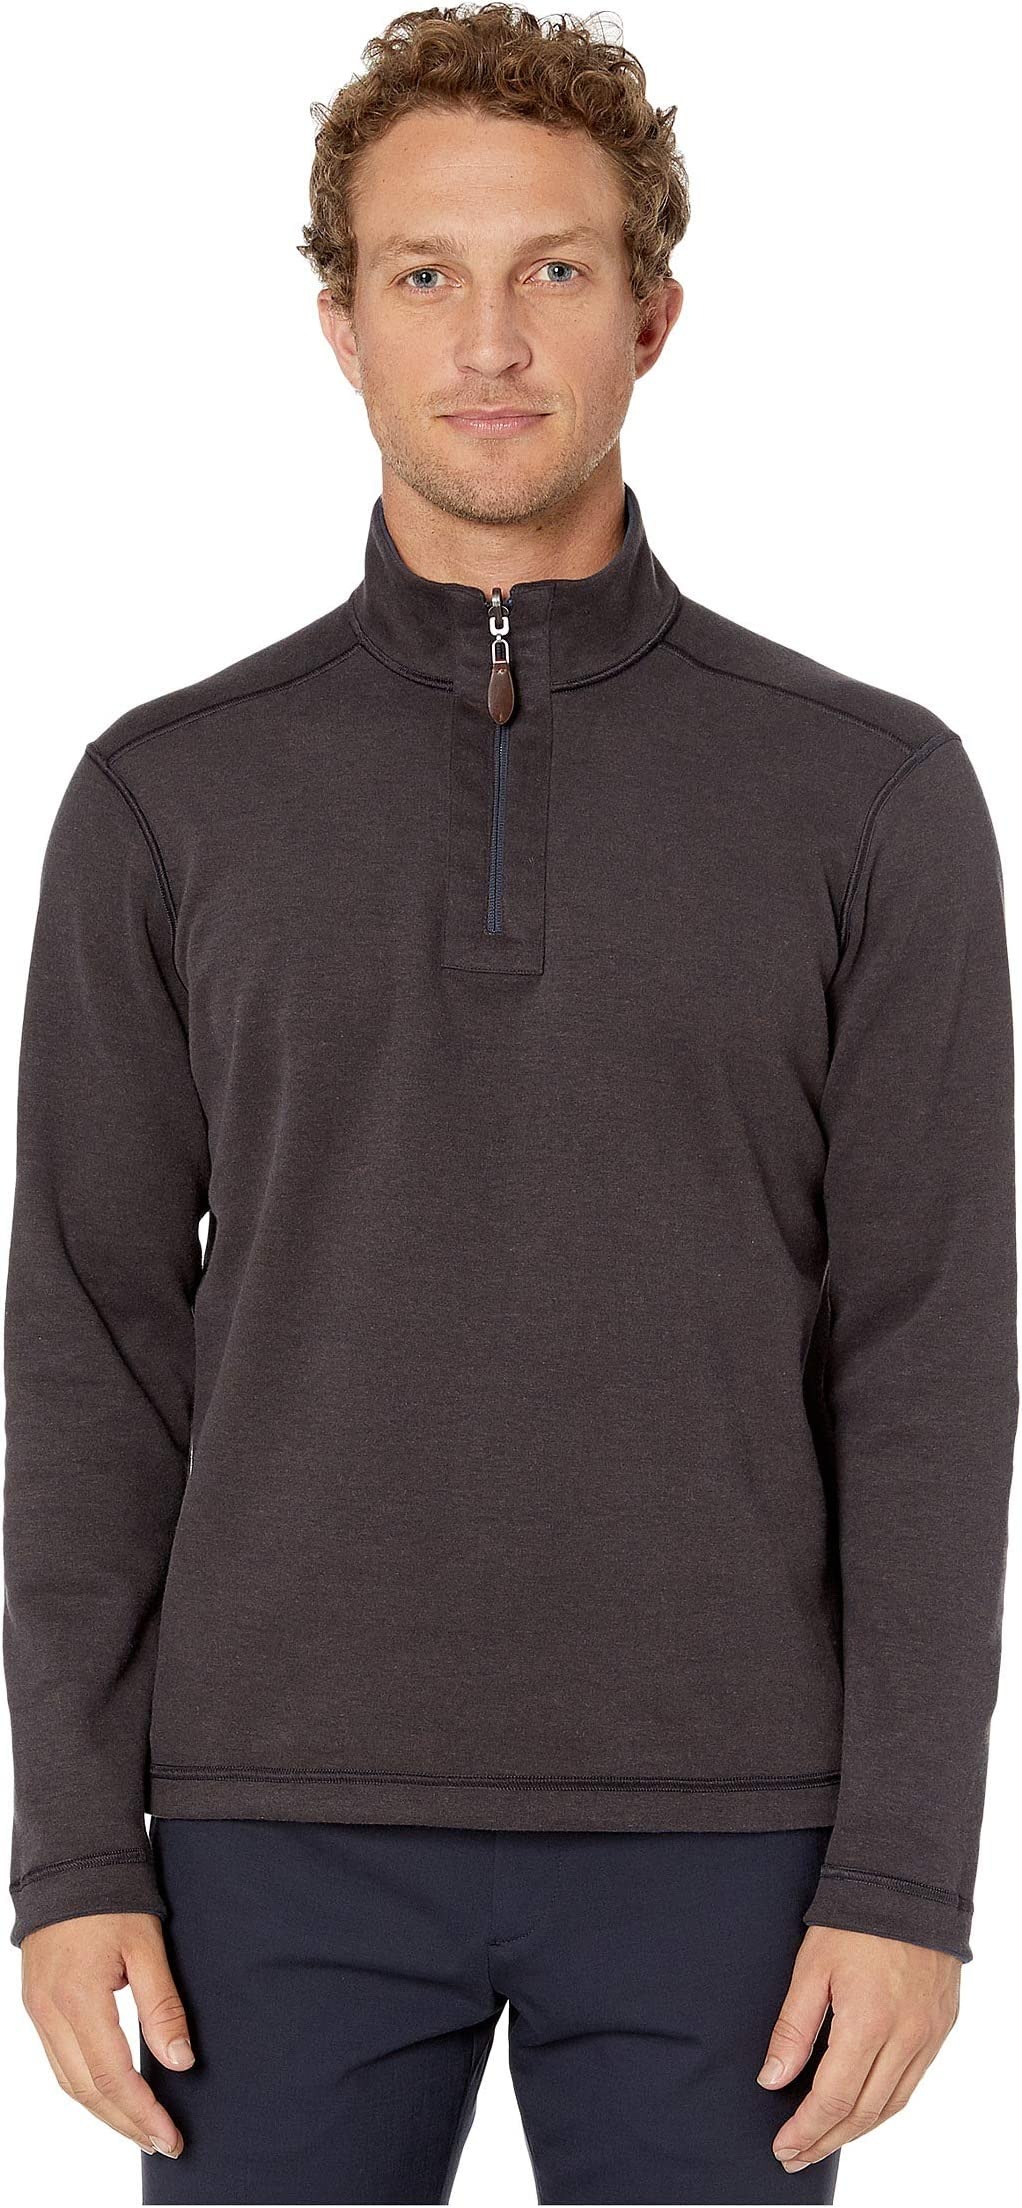 Johnston & Murphy Reversible 1/4 Zip ymYdp